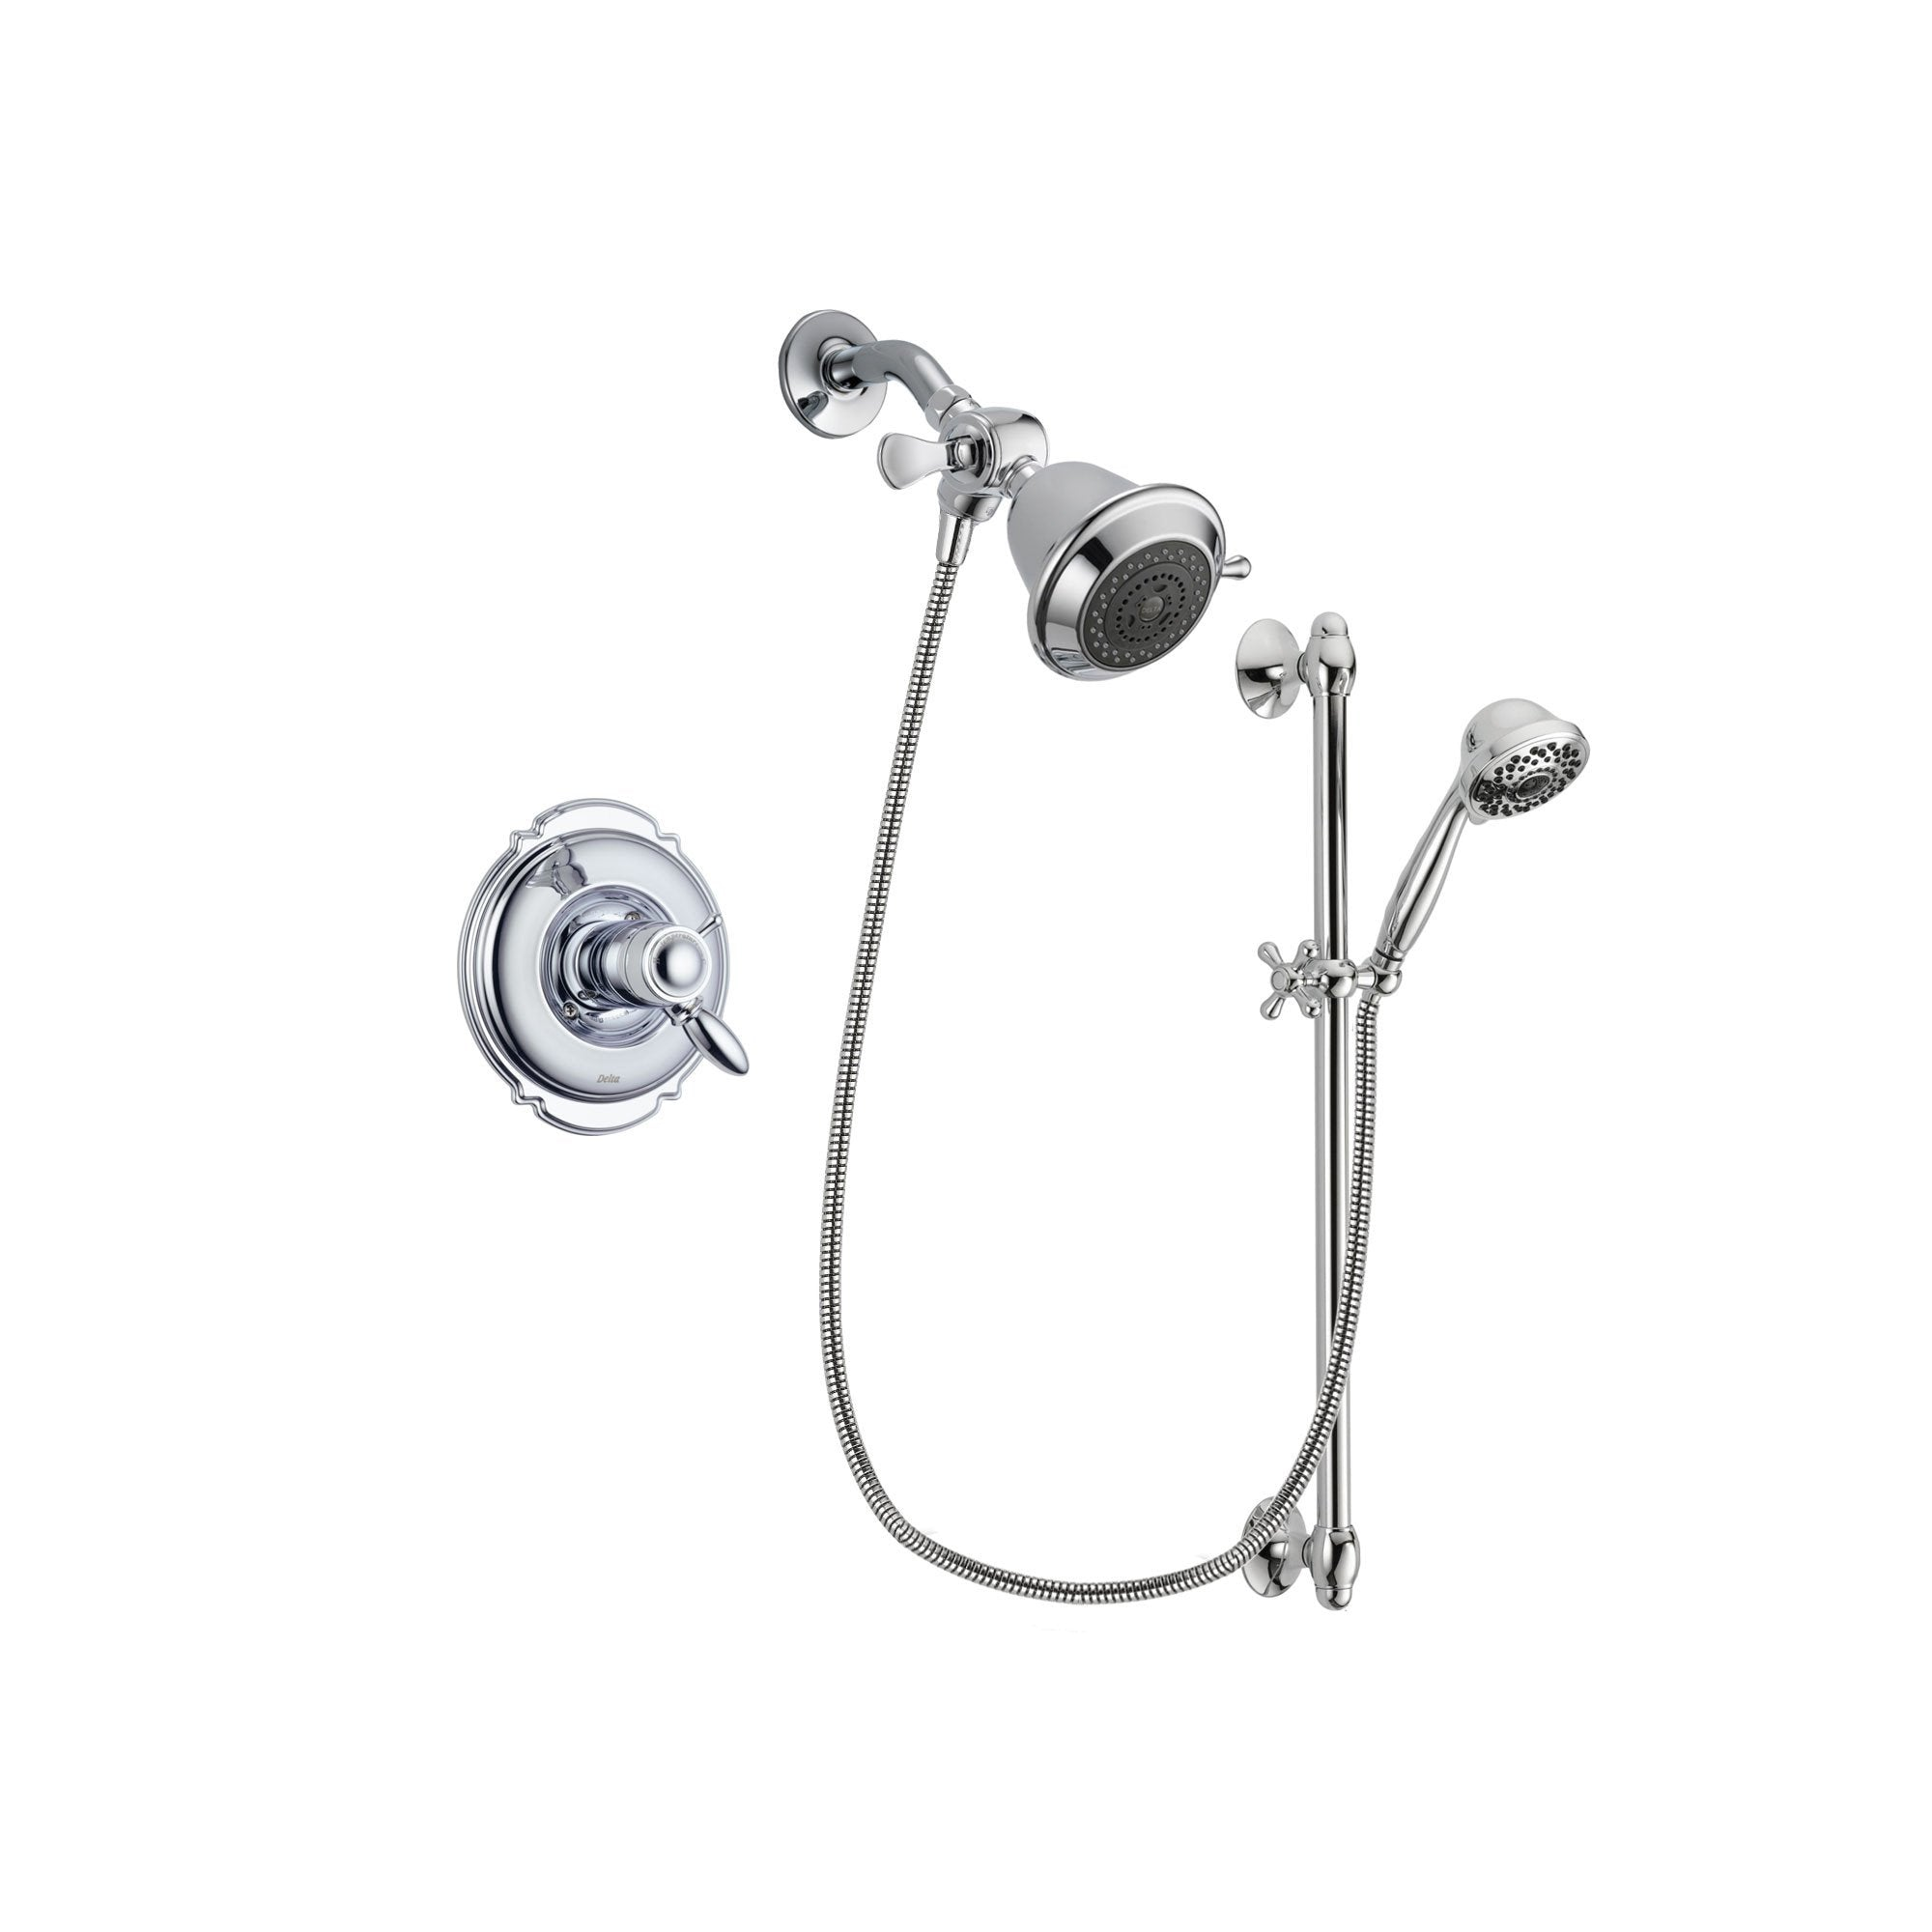 Delta Victorian Chrome Shower Faucet System Package with Hand Shower DSP0564V